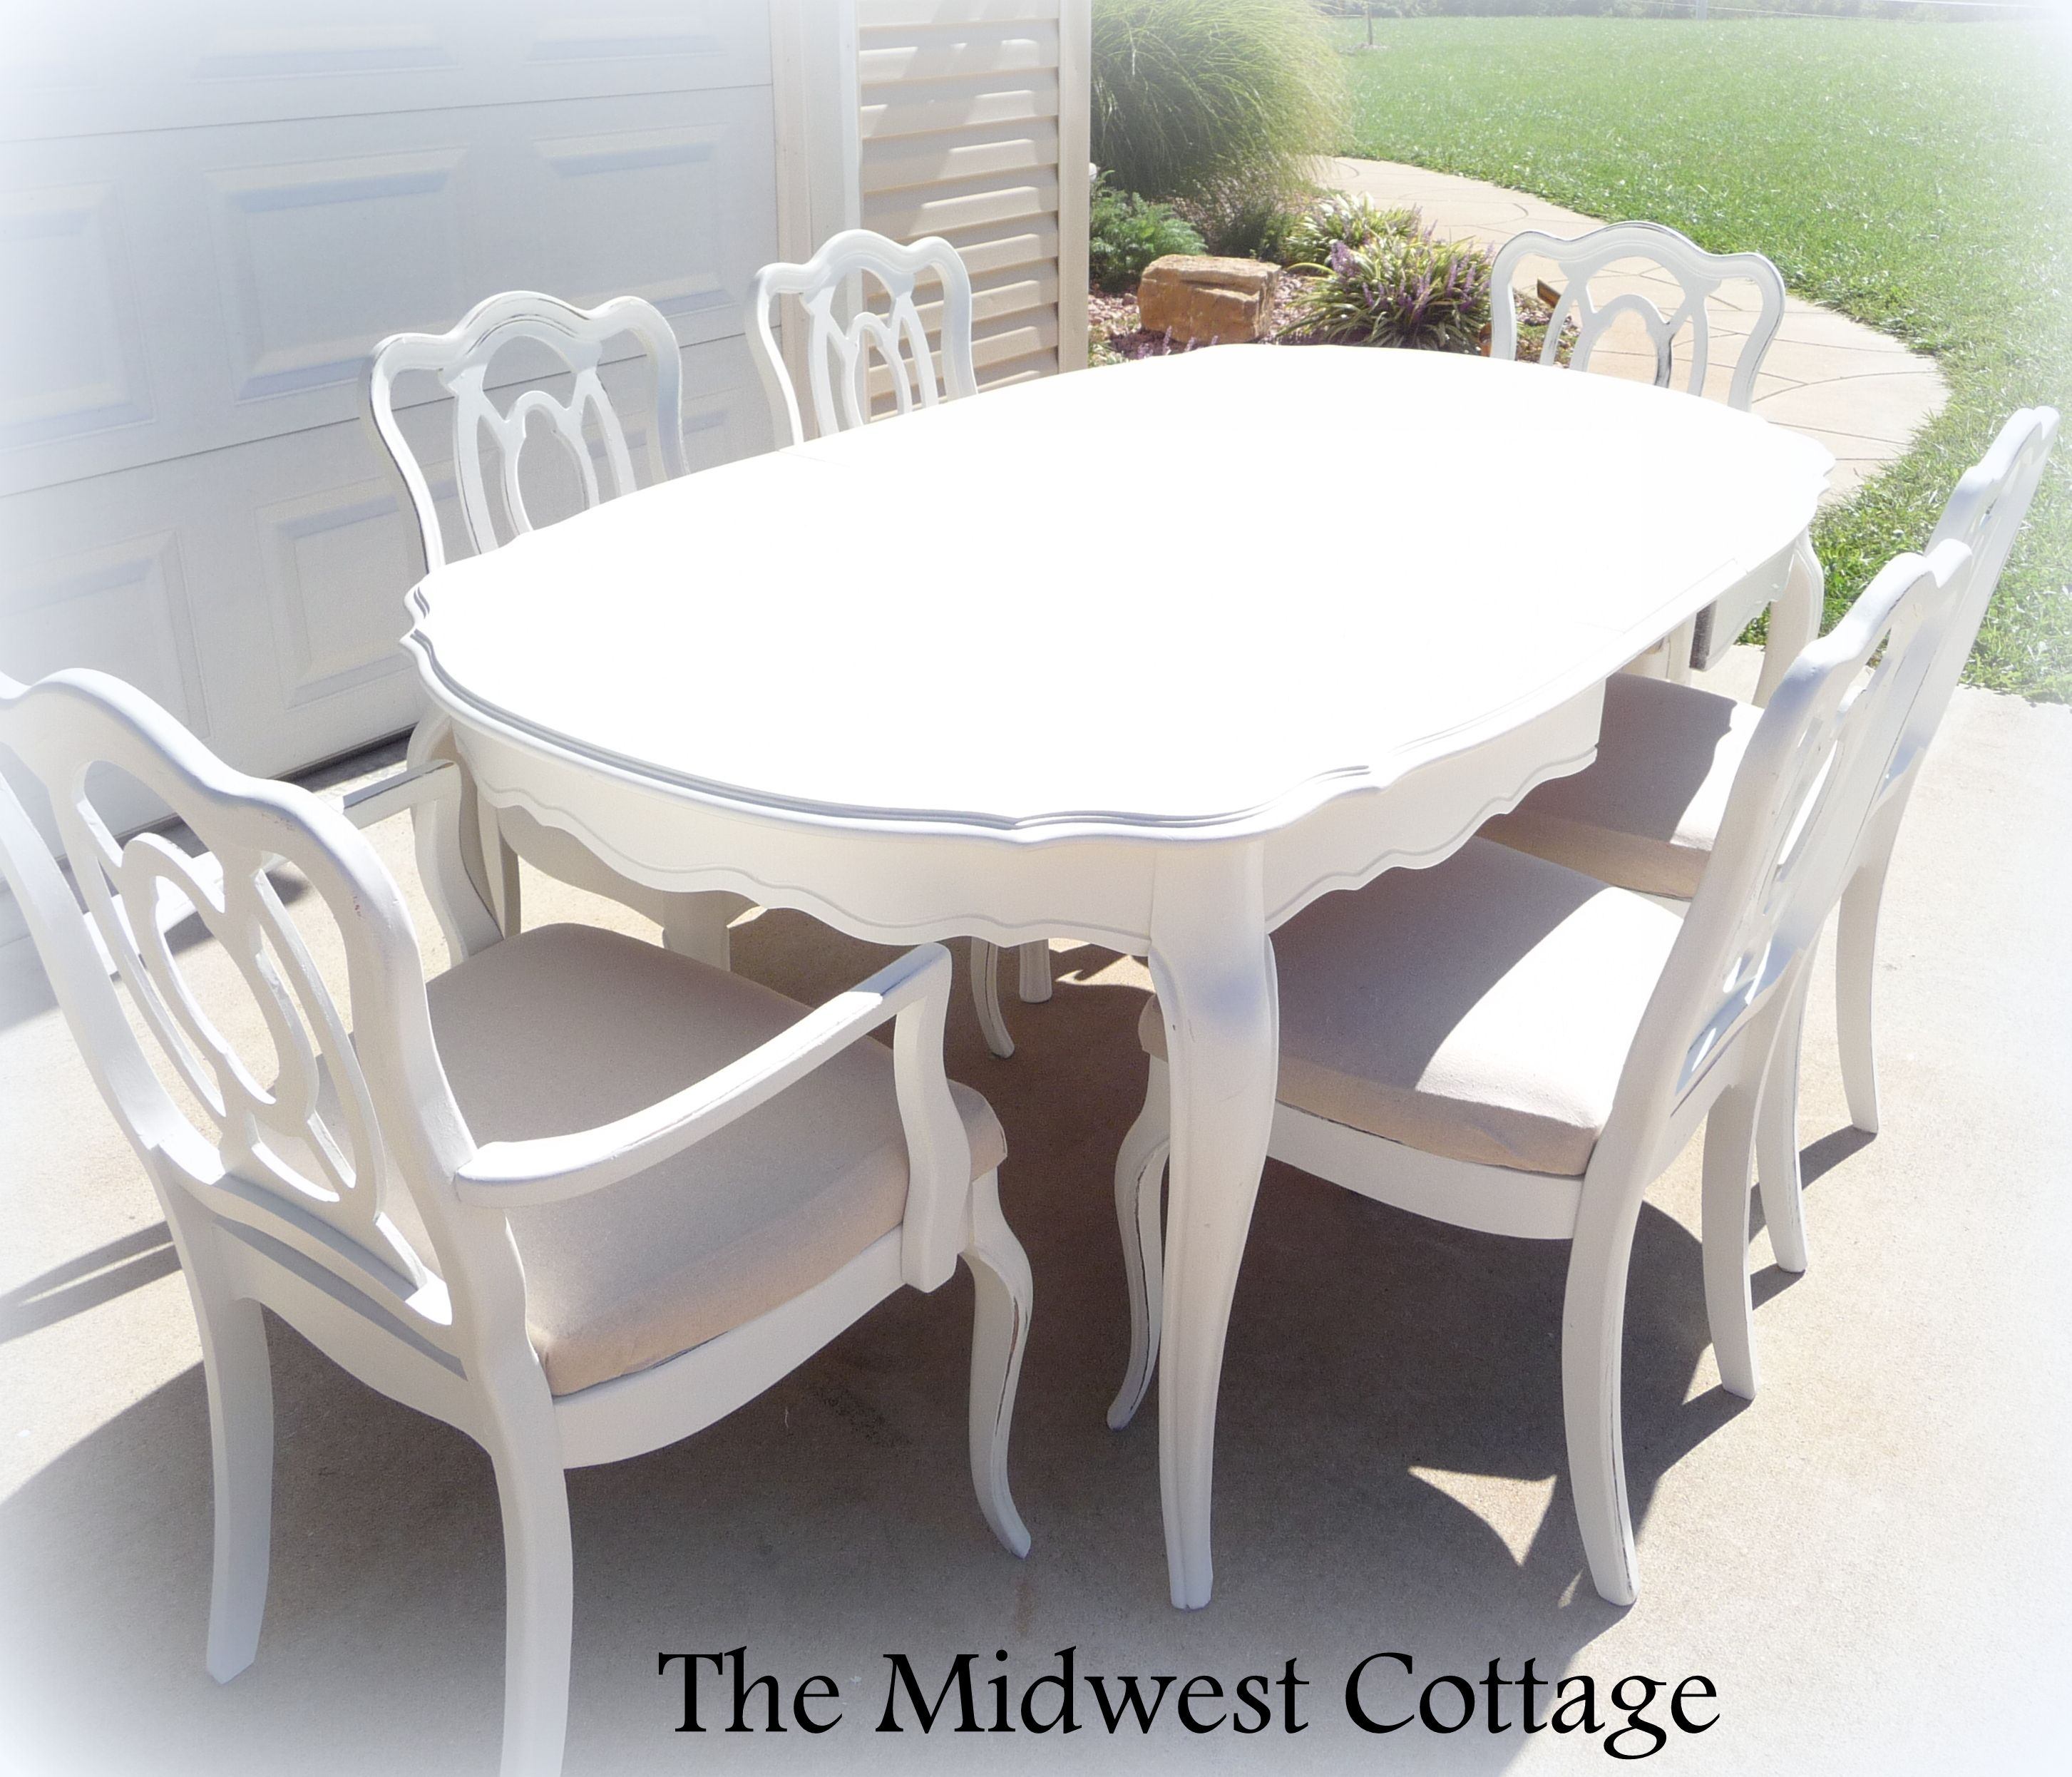 Custom painted dining table and chairs by - Vieille table en bois ...